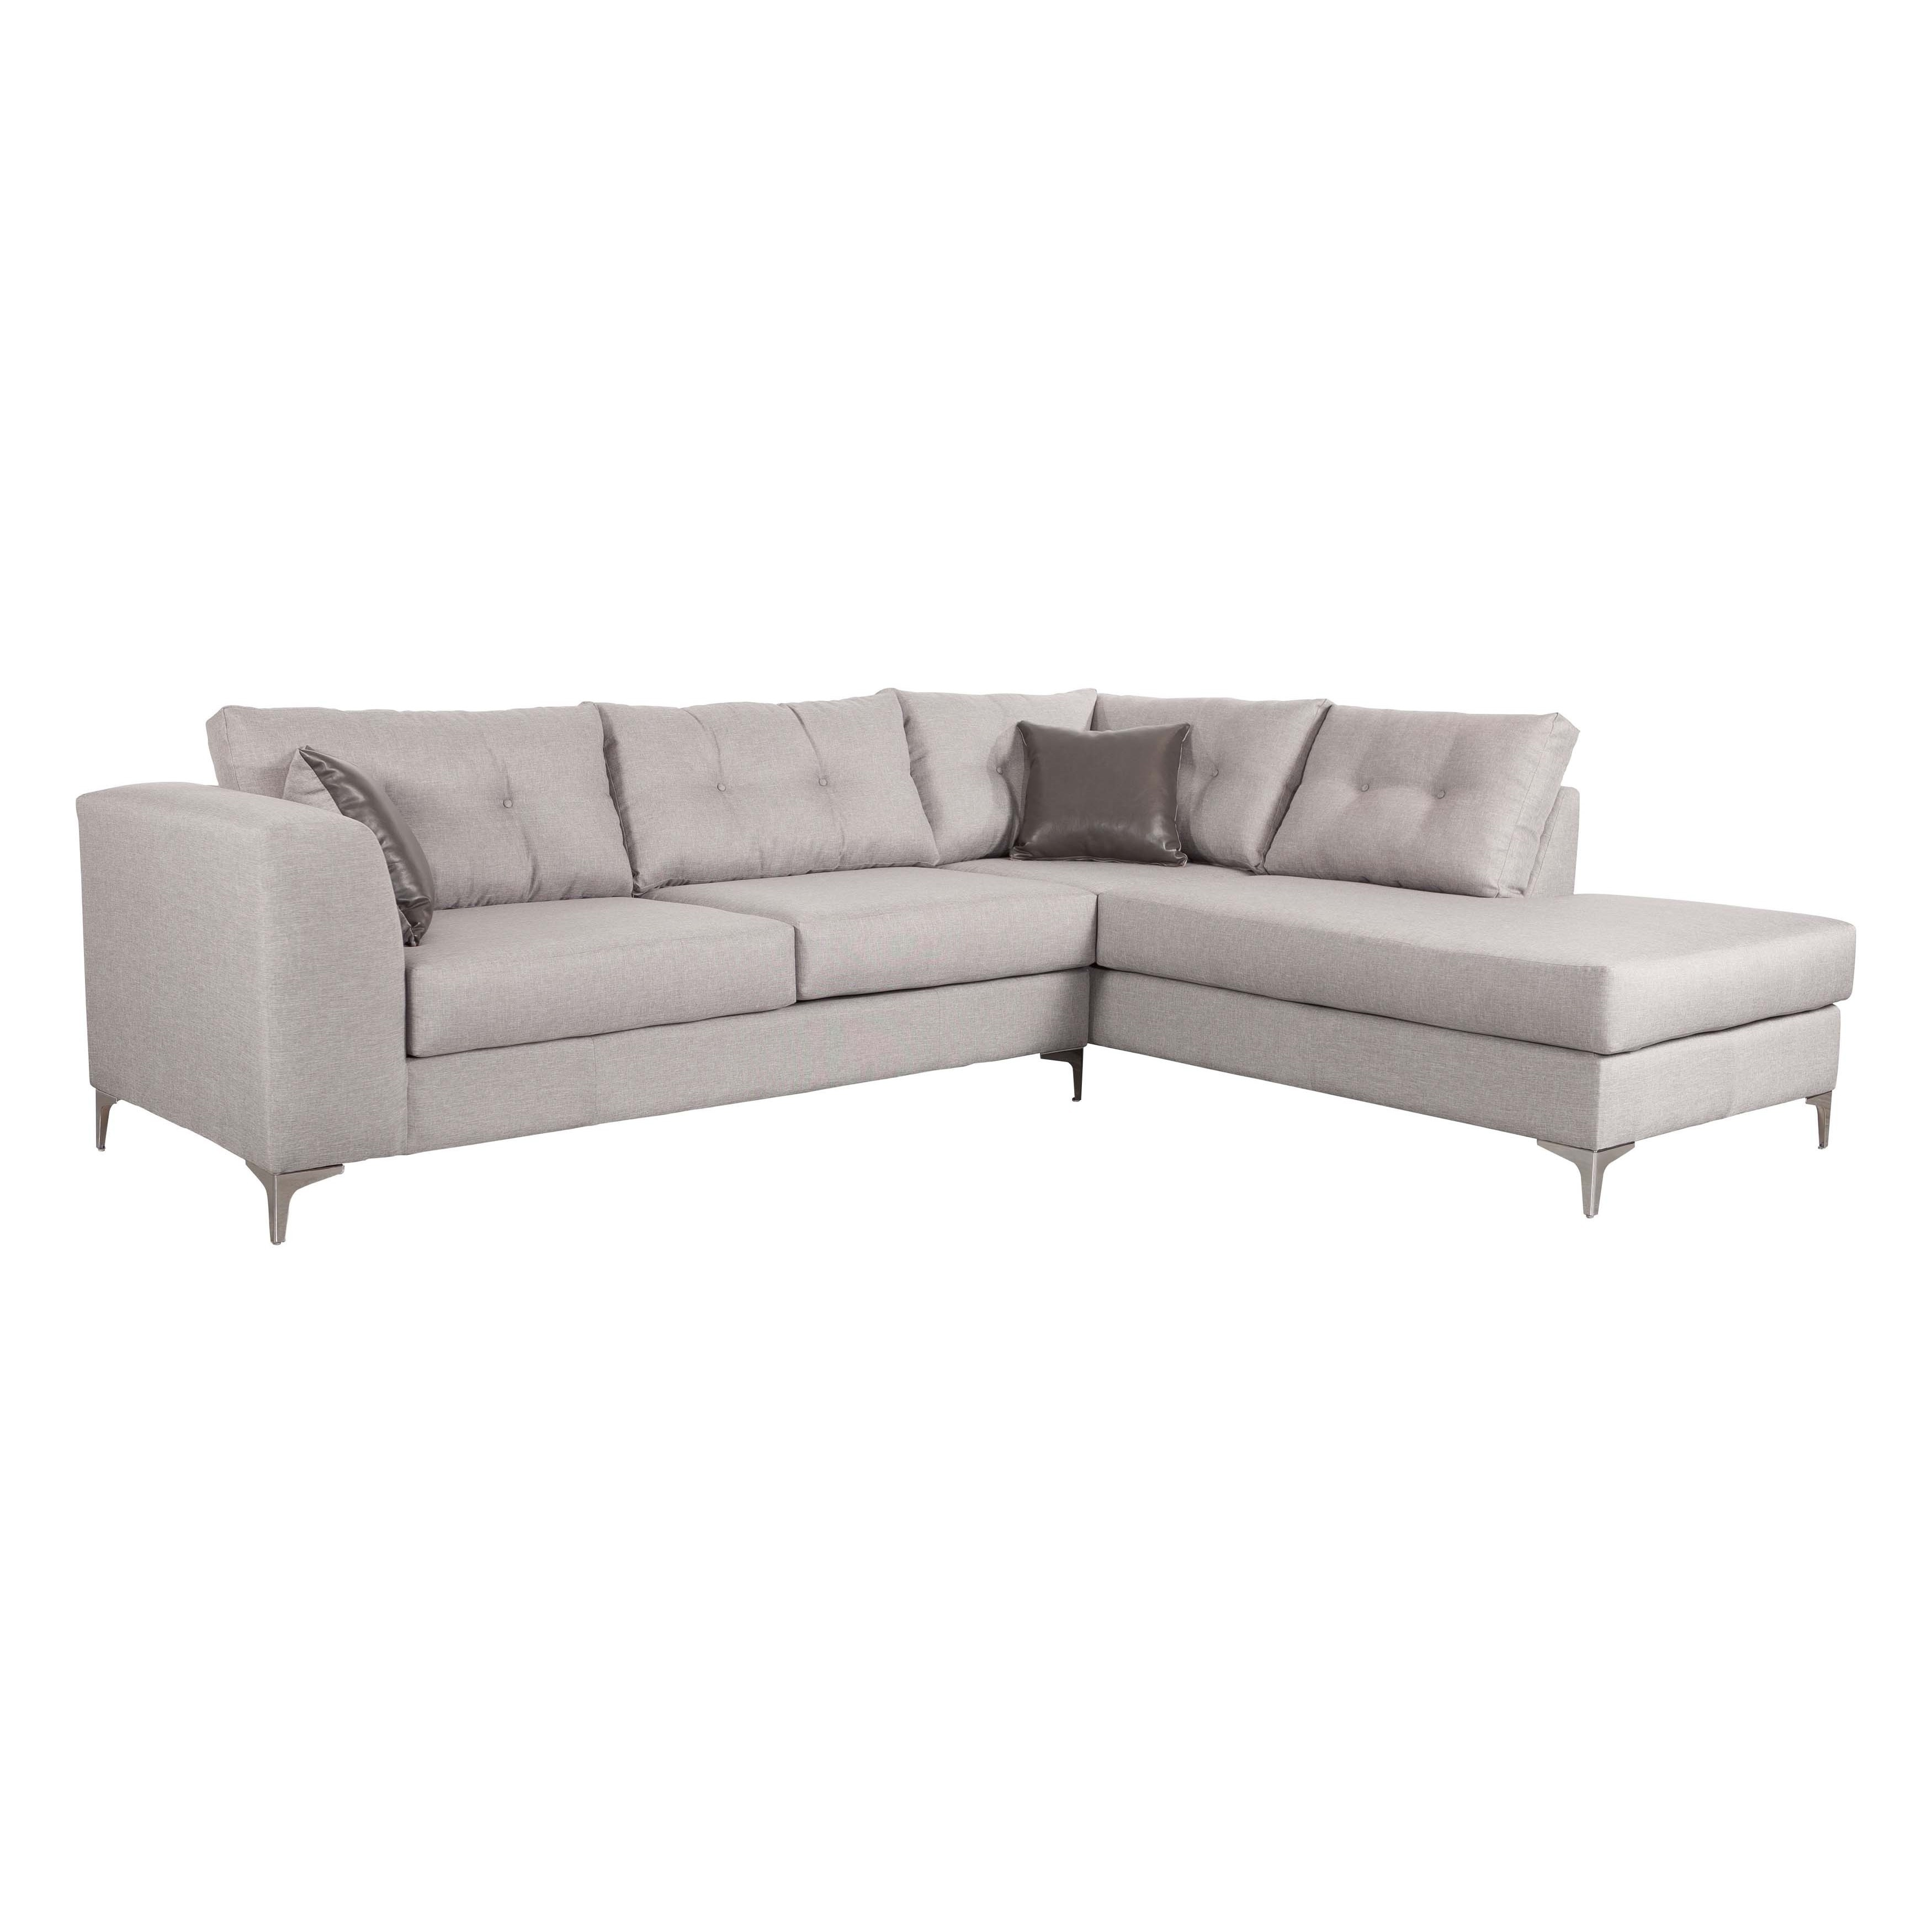 Memphis Sectional Smoke - Free Shipping Today - Overstock - 17534107 intended for Memphis Sectional Sofas (Image 4 of 10)